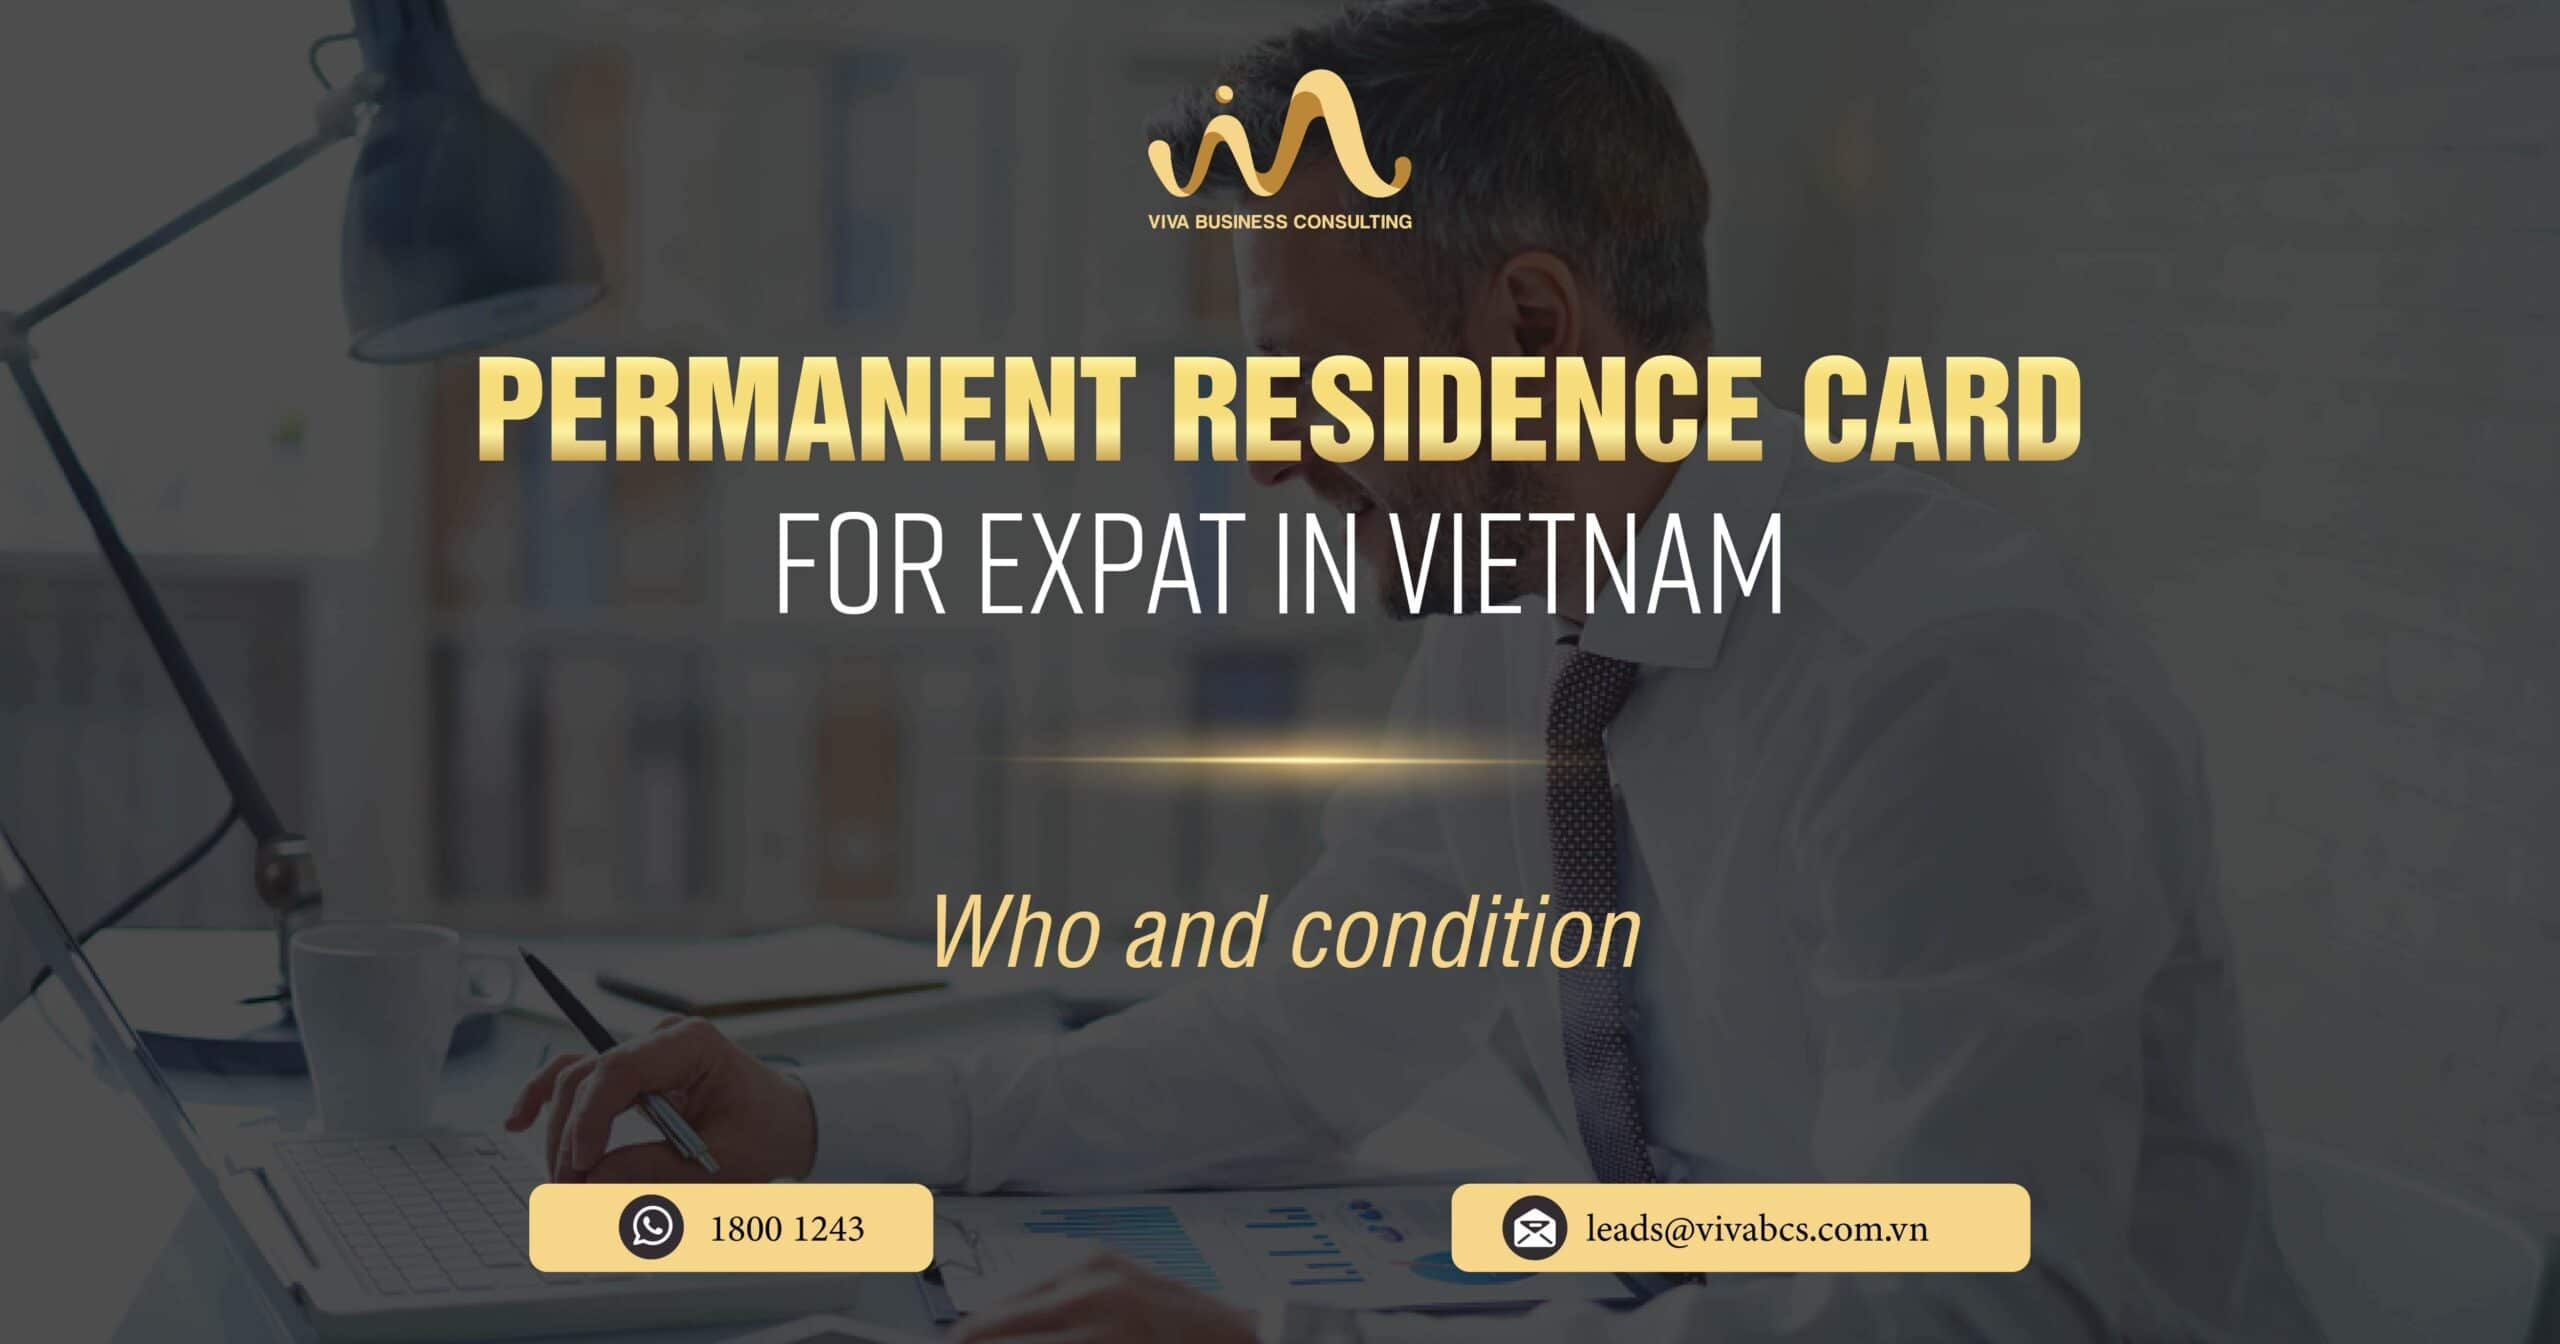 Permanent residence card for foreigners in Vietnam